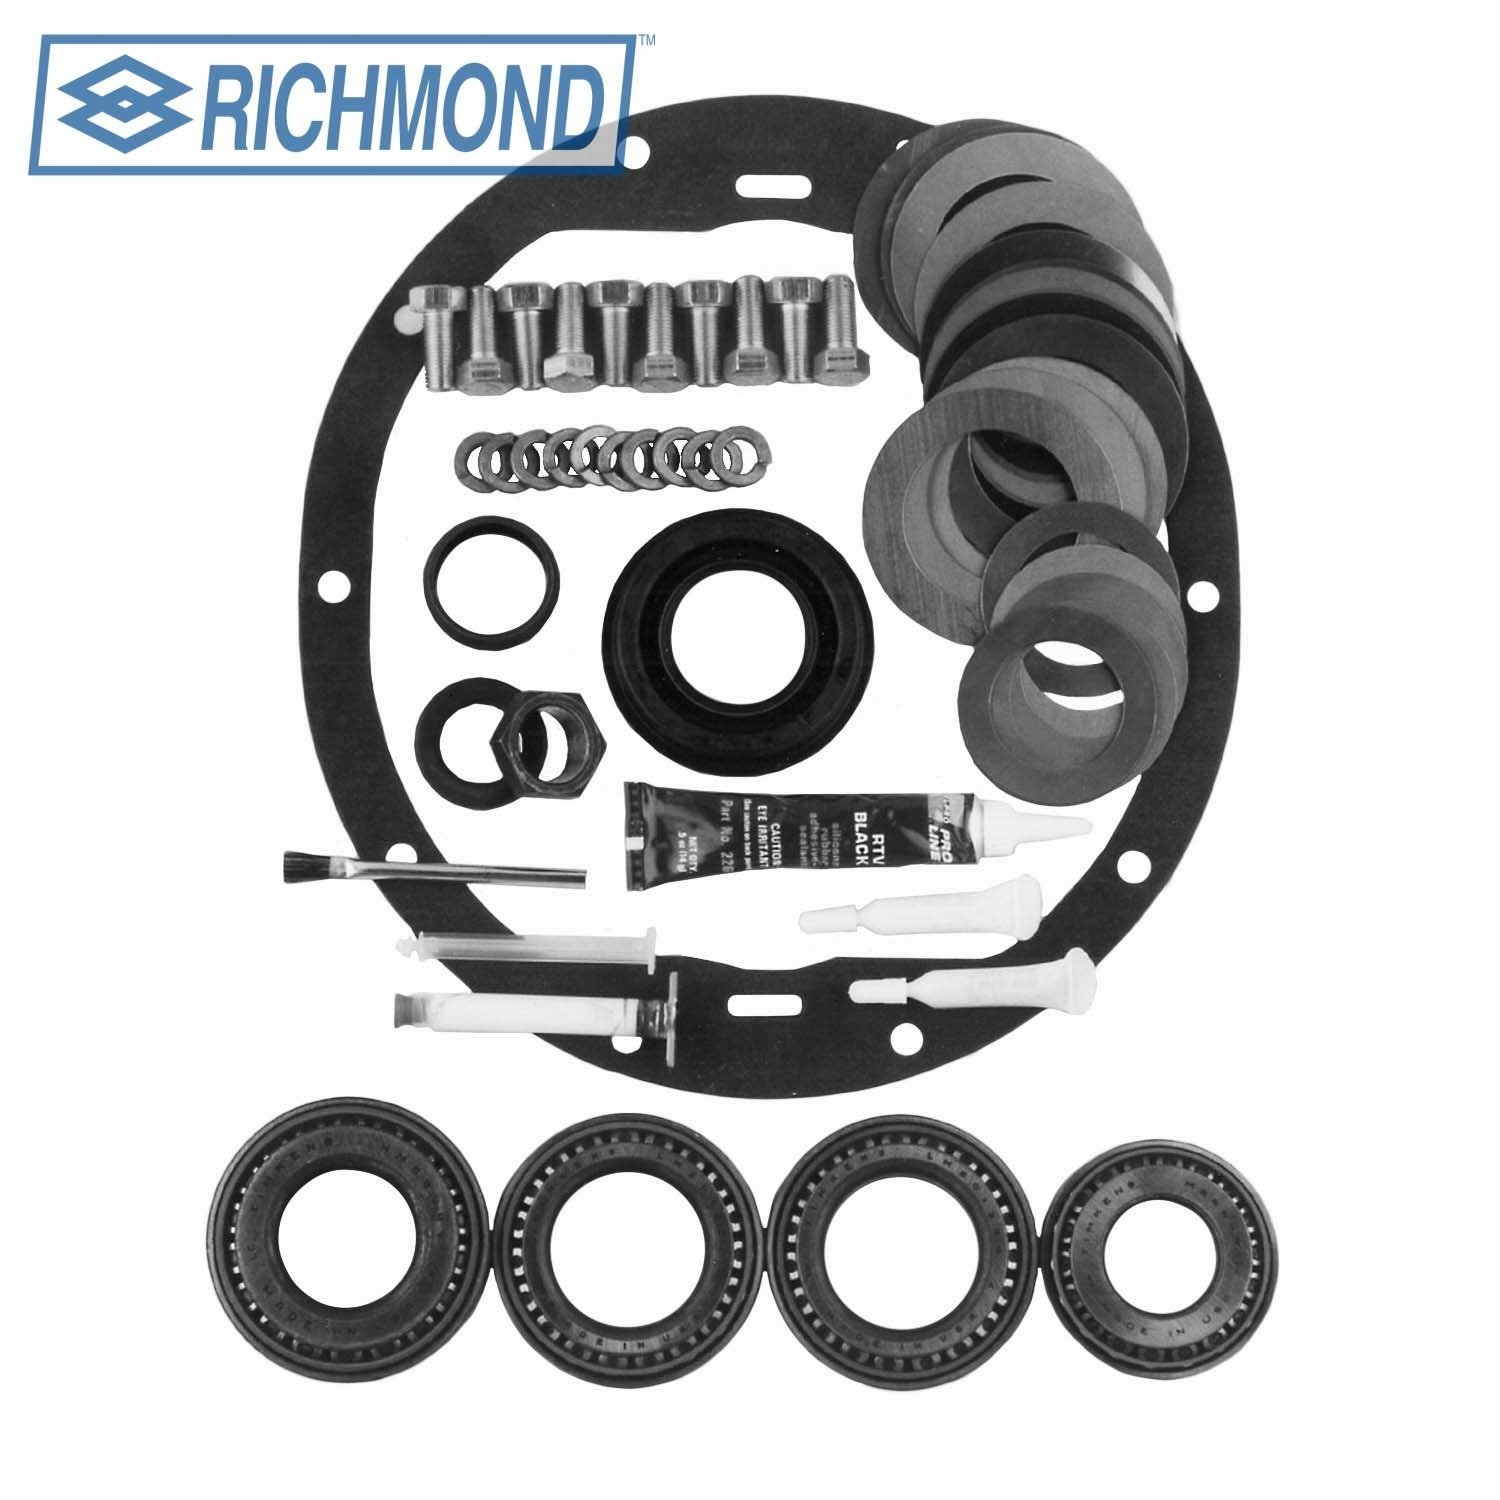 83-1052 Richmond Install Kit